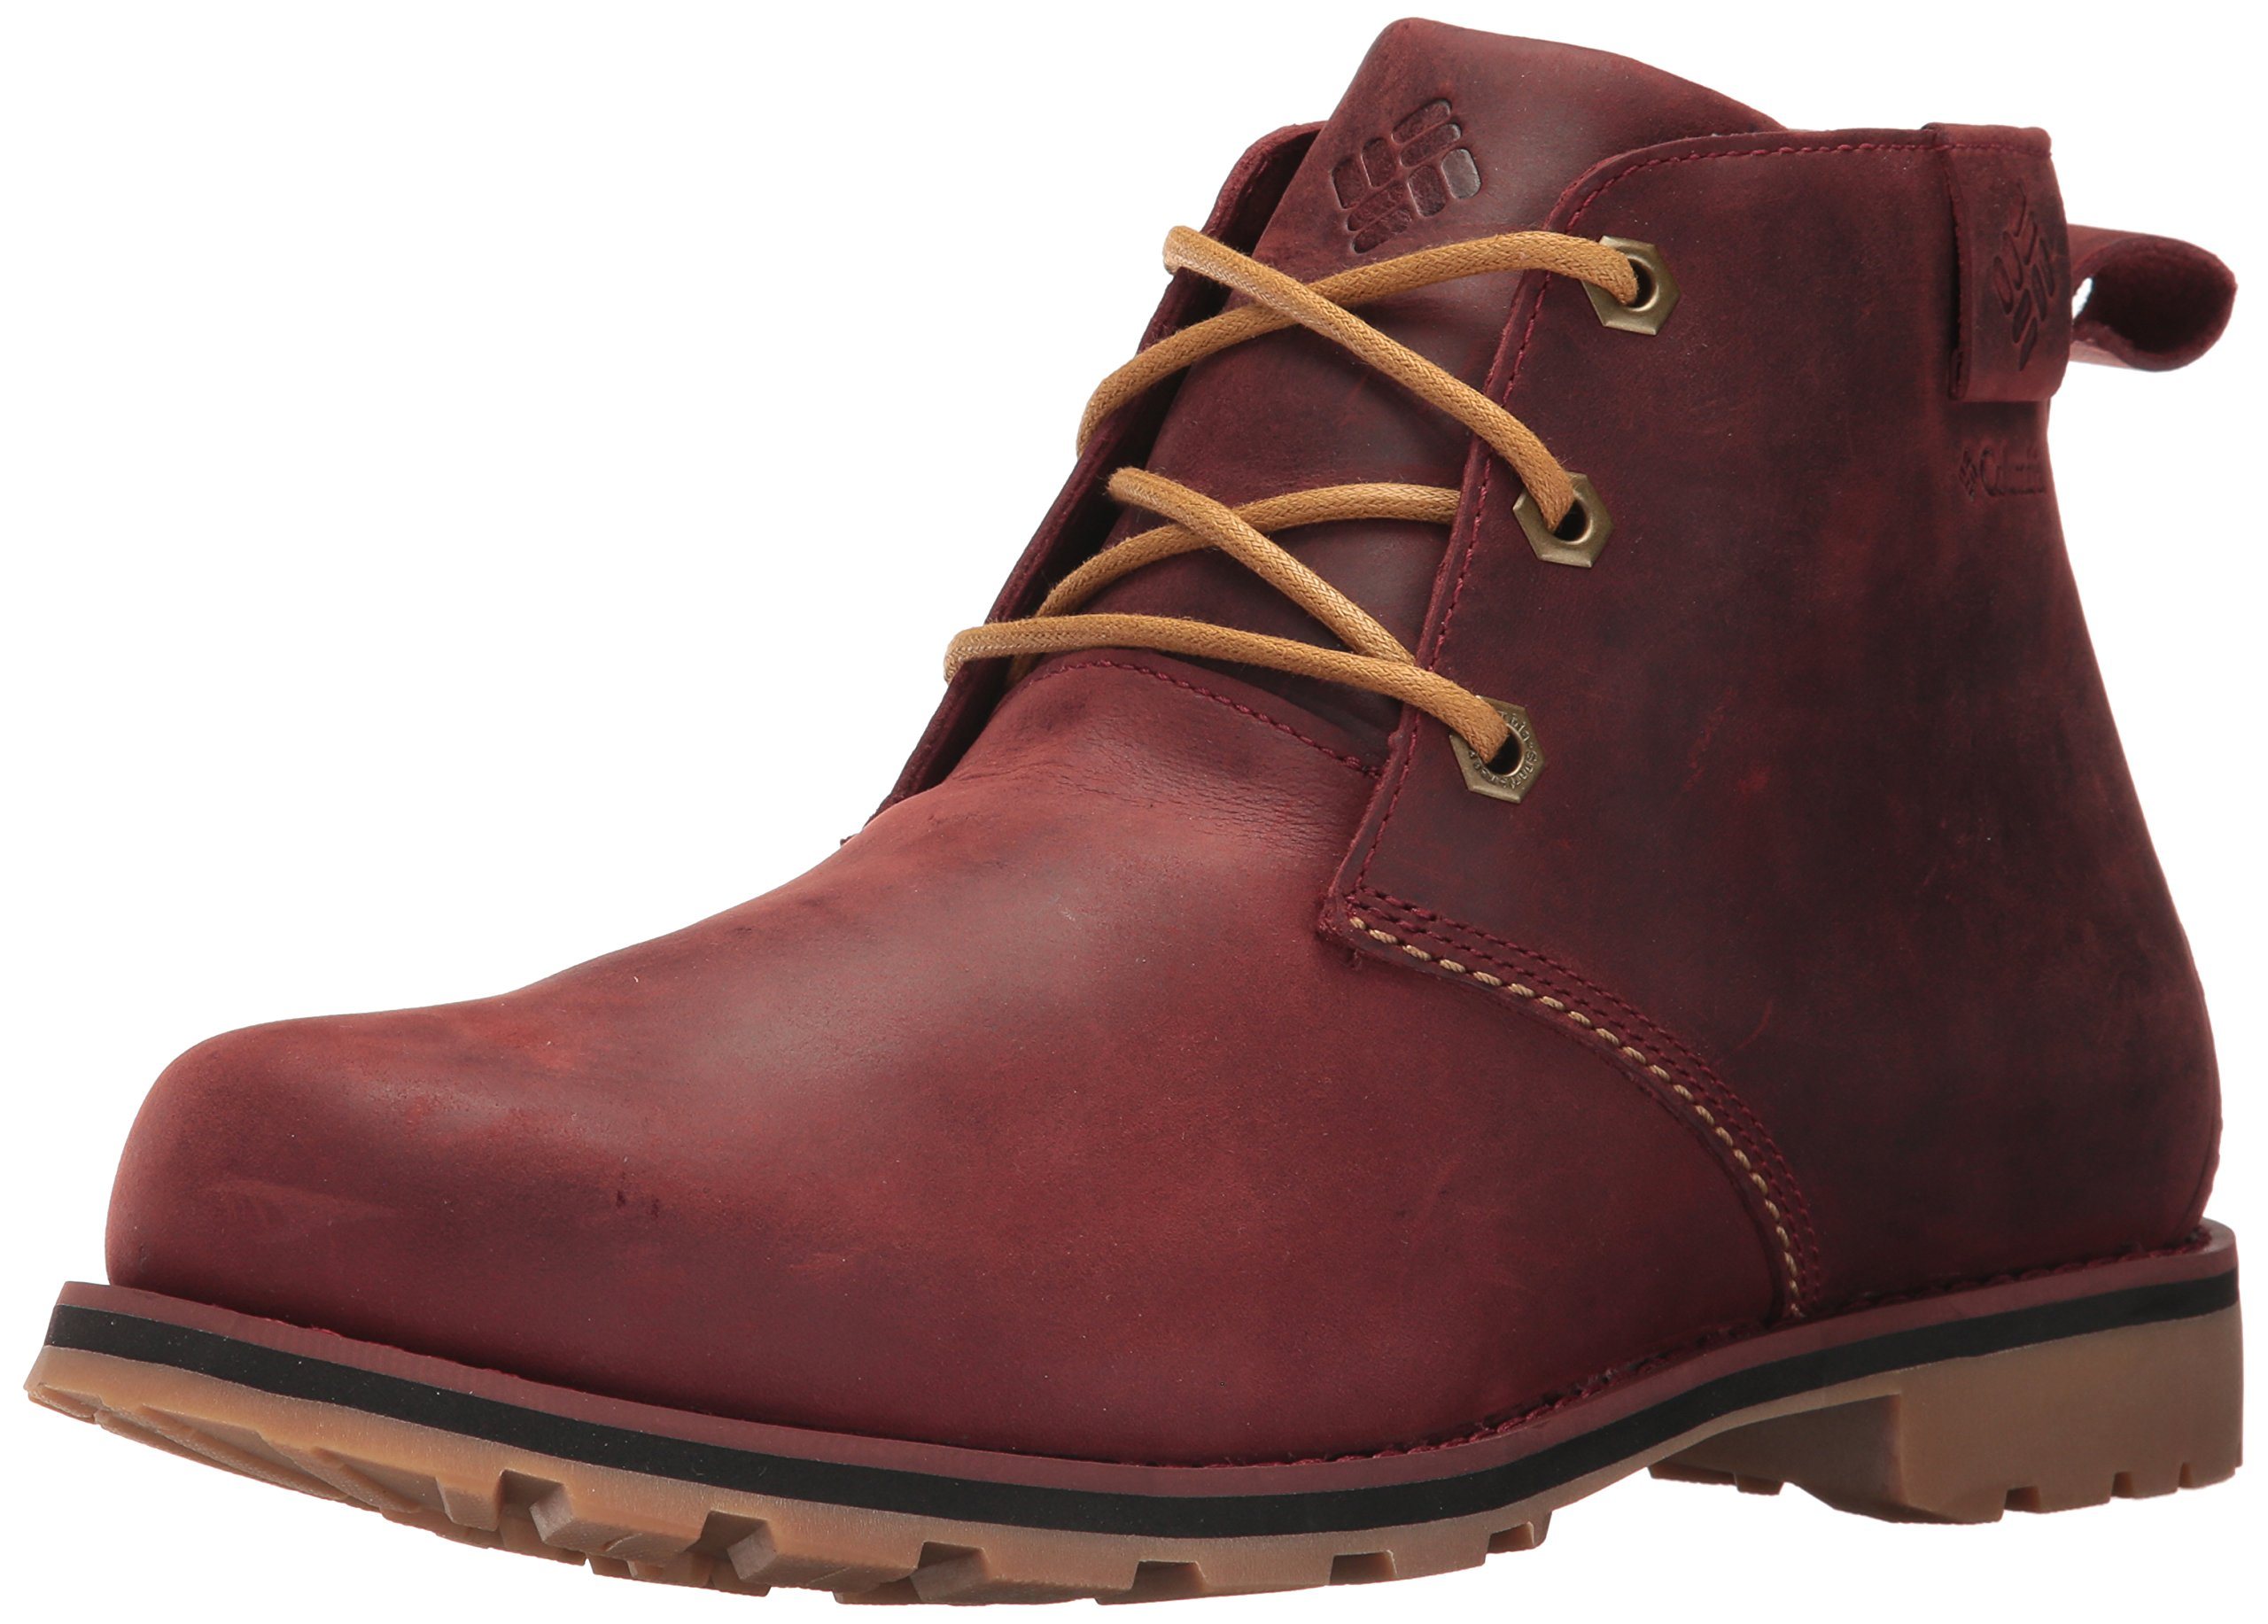 Columbia Men's Chinook Chukka Waterproof Uniform Dress Shoe, Madder Brown, Mountain Red, 11 D US by Columbia